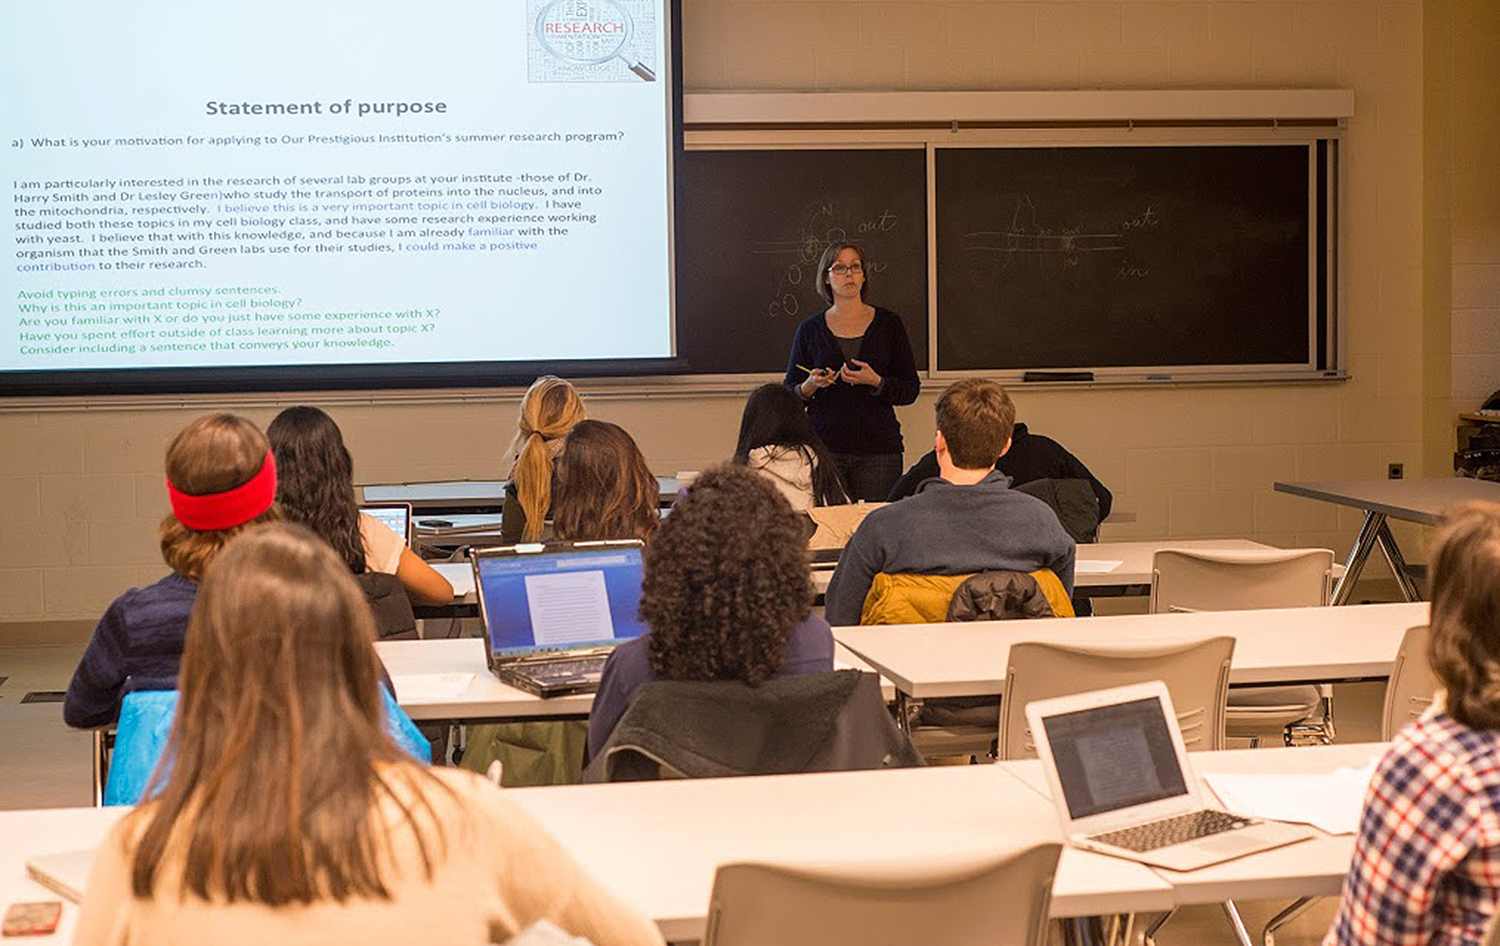 Students were required to attend both sessions and complete a mock application. The workshop also provided guidance on locating appropriate summer research programs and requesting supporting letters of recommendation.